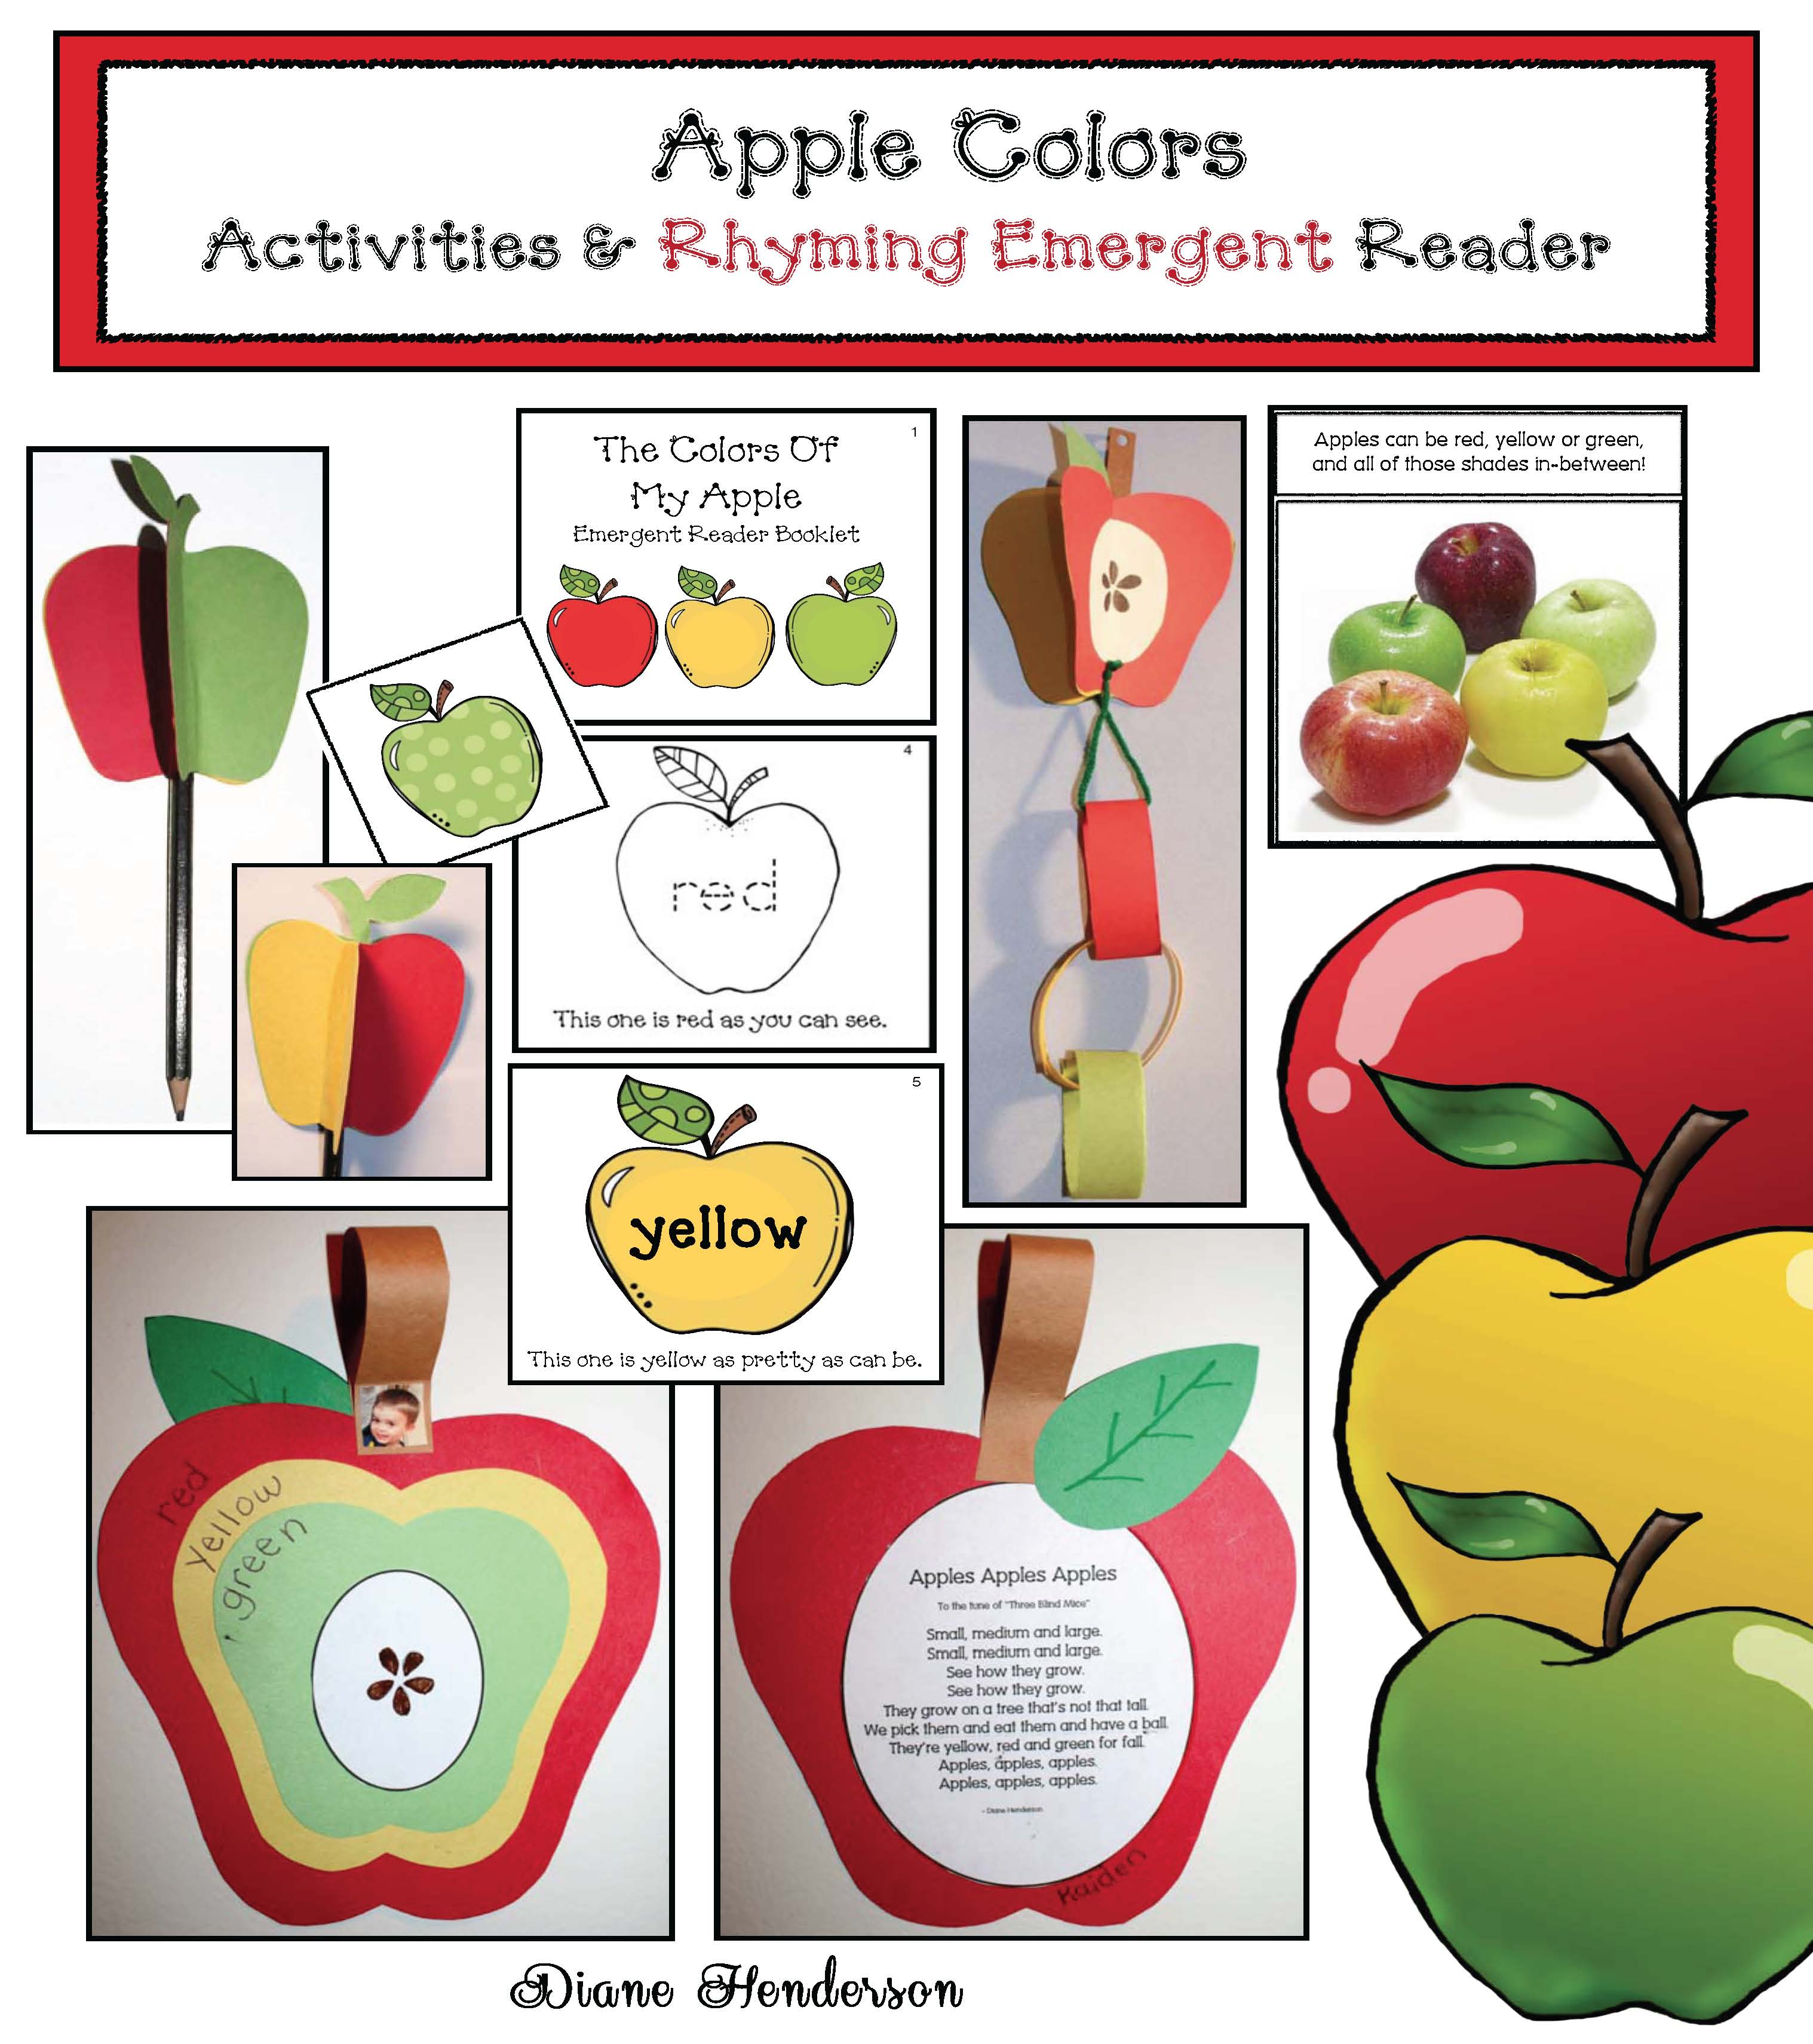 cover tri colored apples new